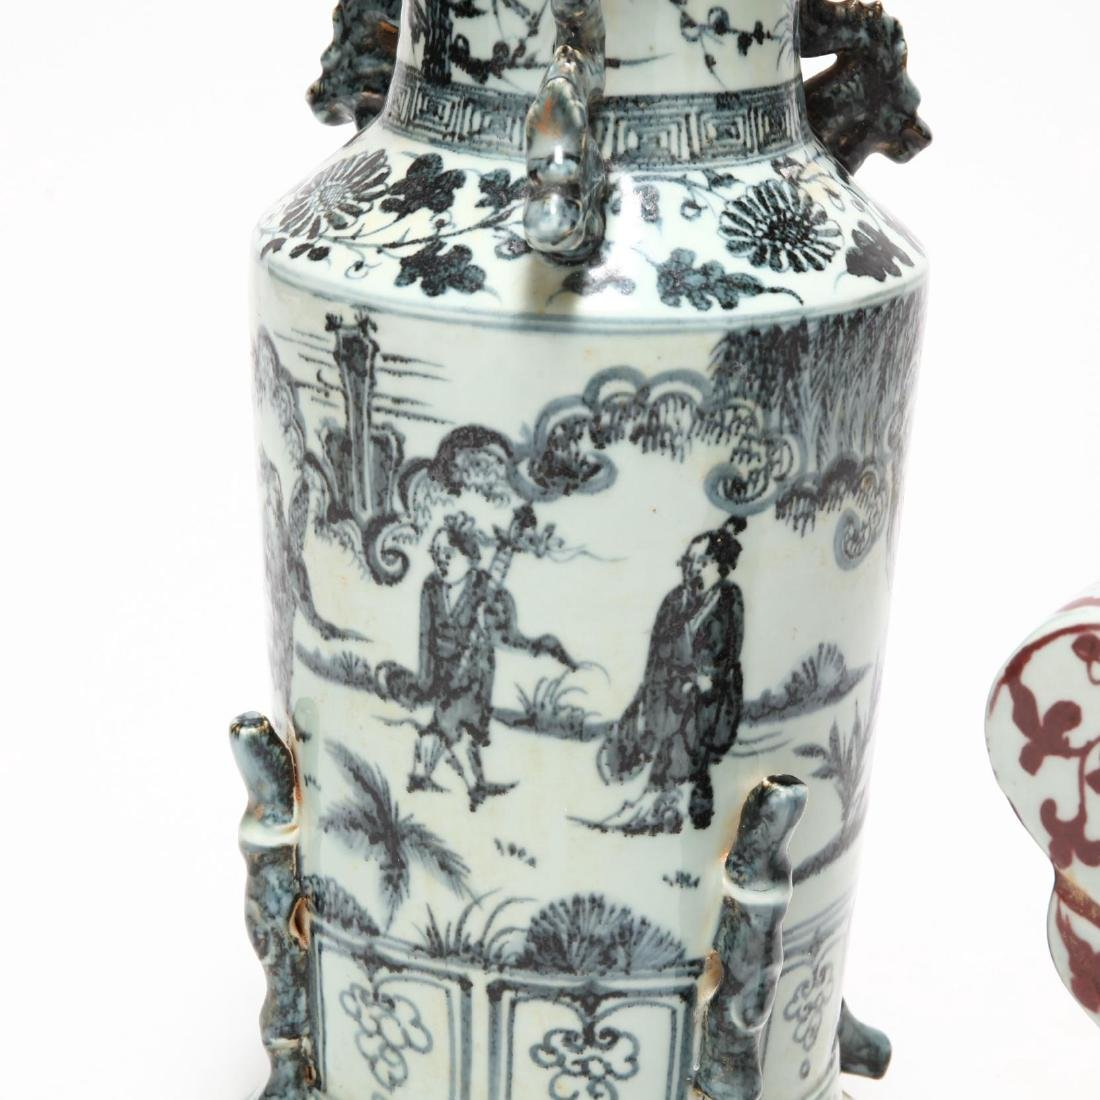 Two Decorative Chinese Urns - 2